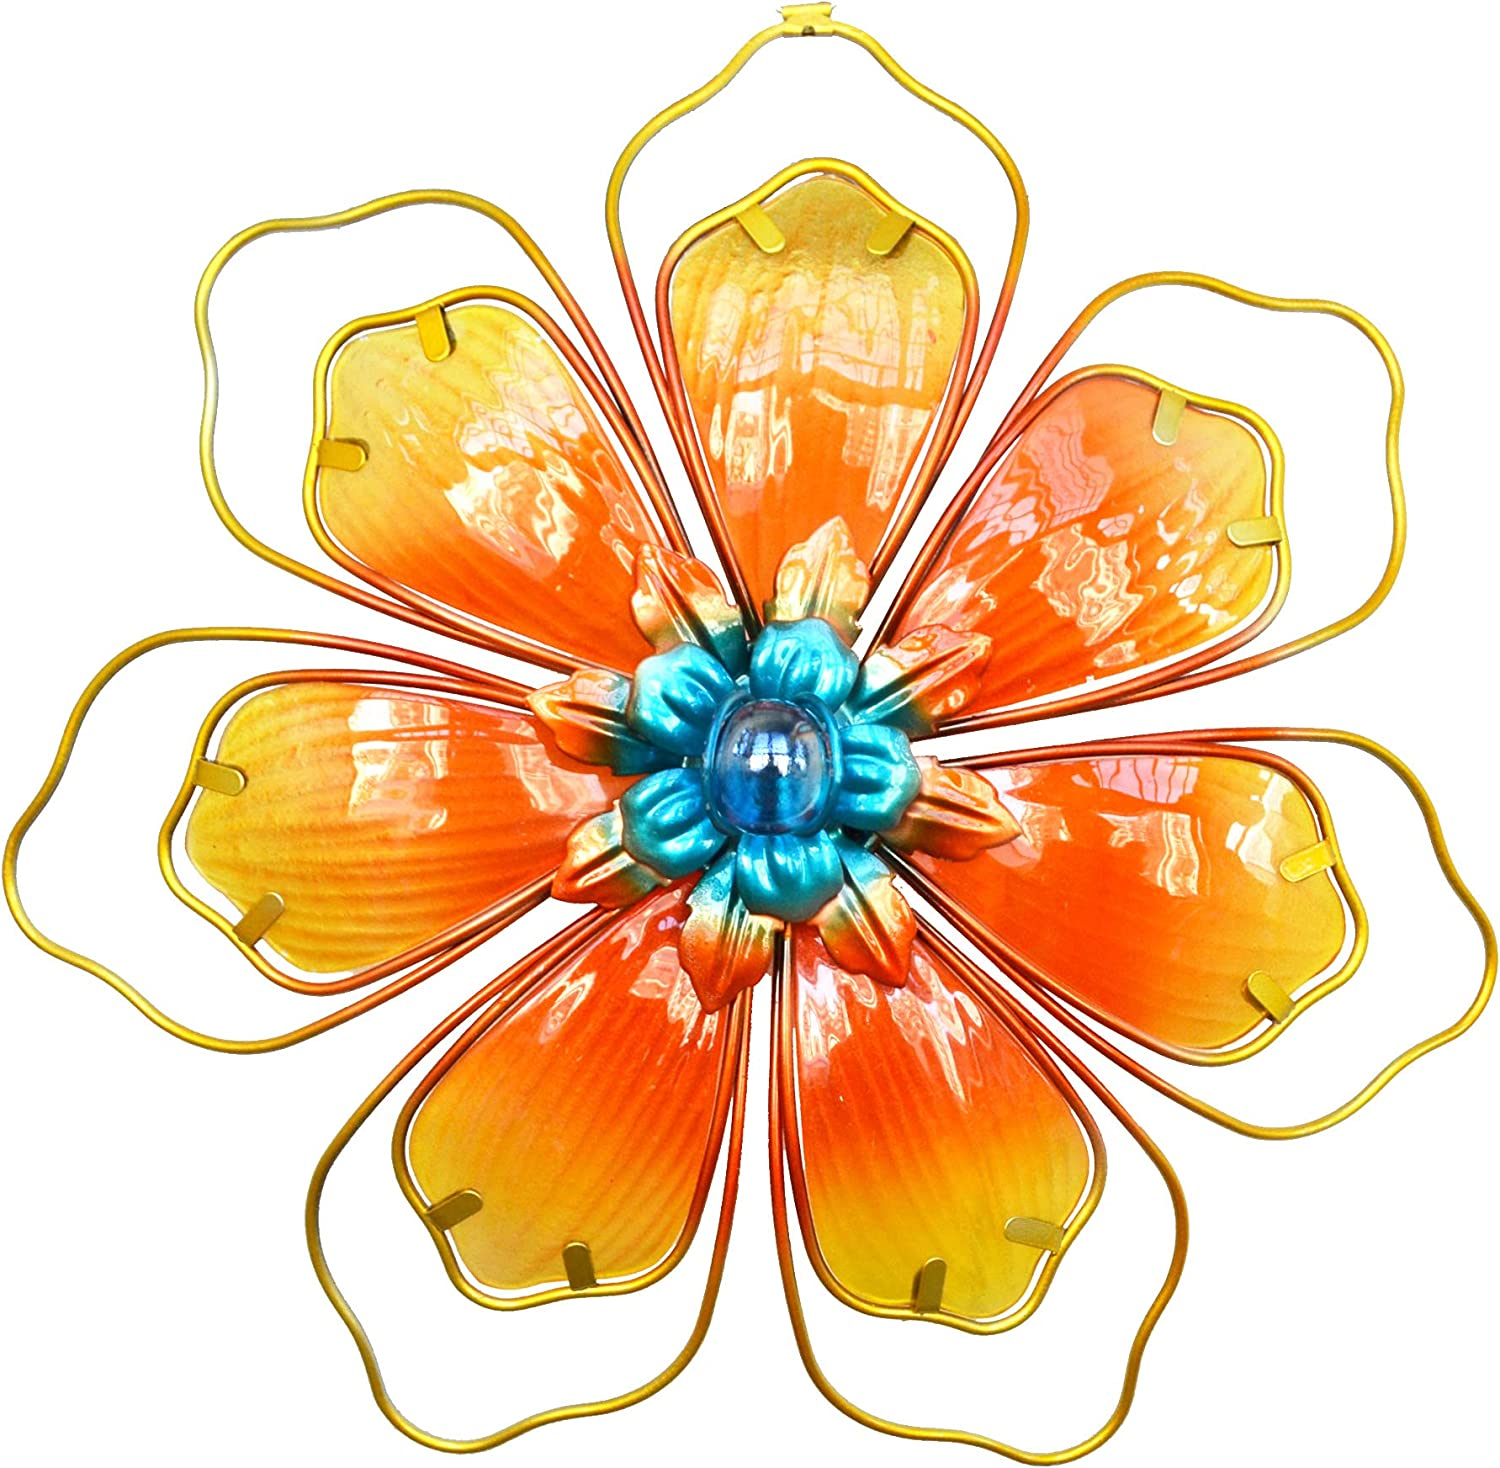 GIFTME 5 Metal Stained Glass Floral Wall Art Decor Livingroom Bathroom Bedroom Sunflower Home Decor(12.5Inch,Yellow)